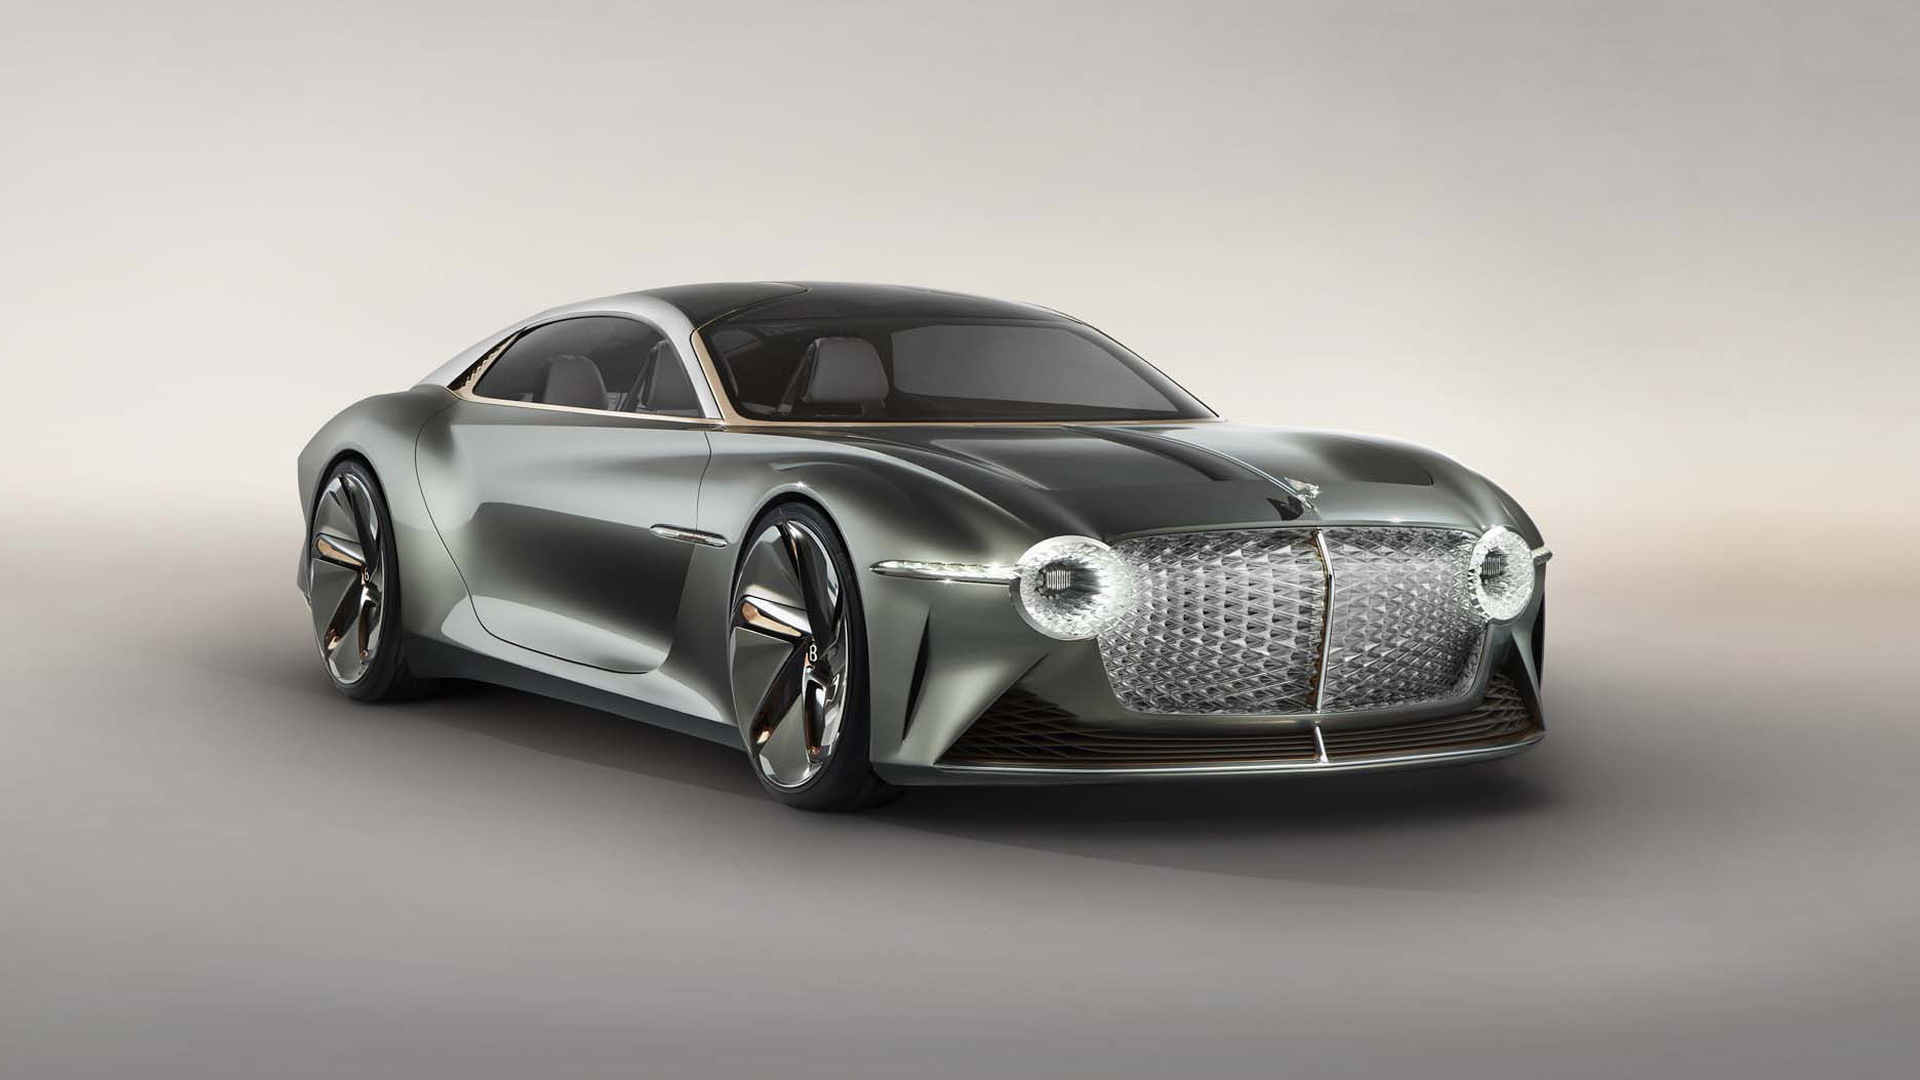 Bentley EXP 100 GT revealed as spectacular take on the GT vehicle